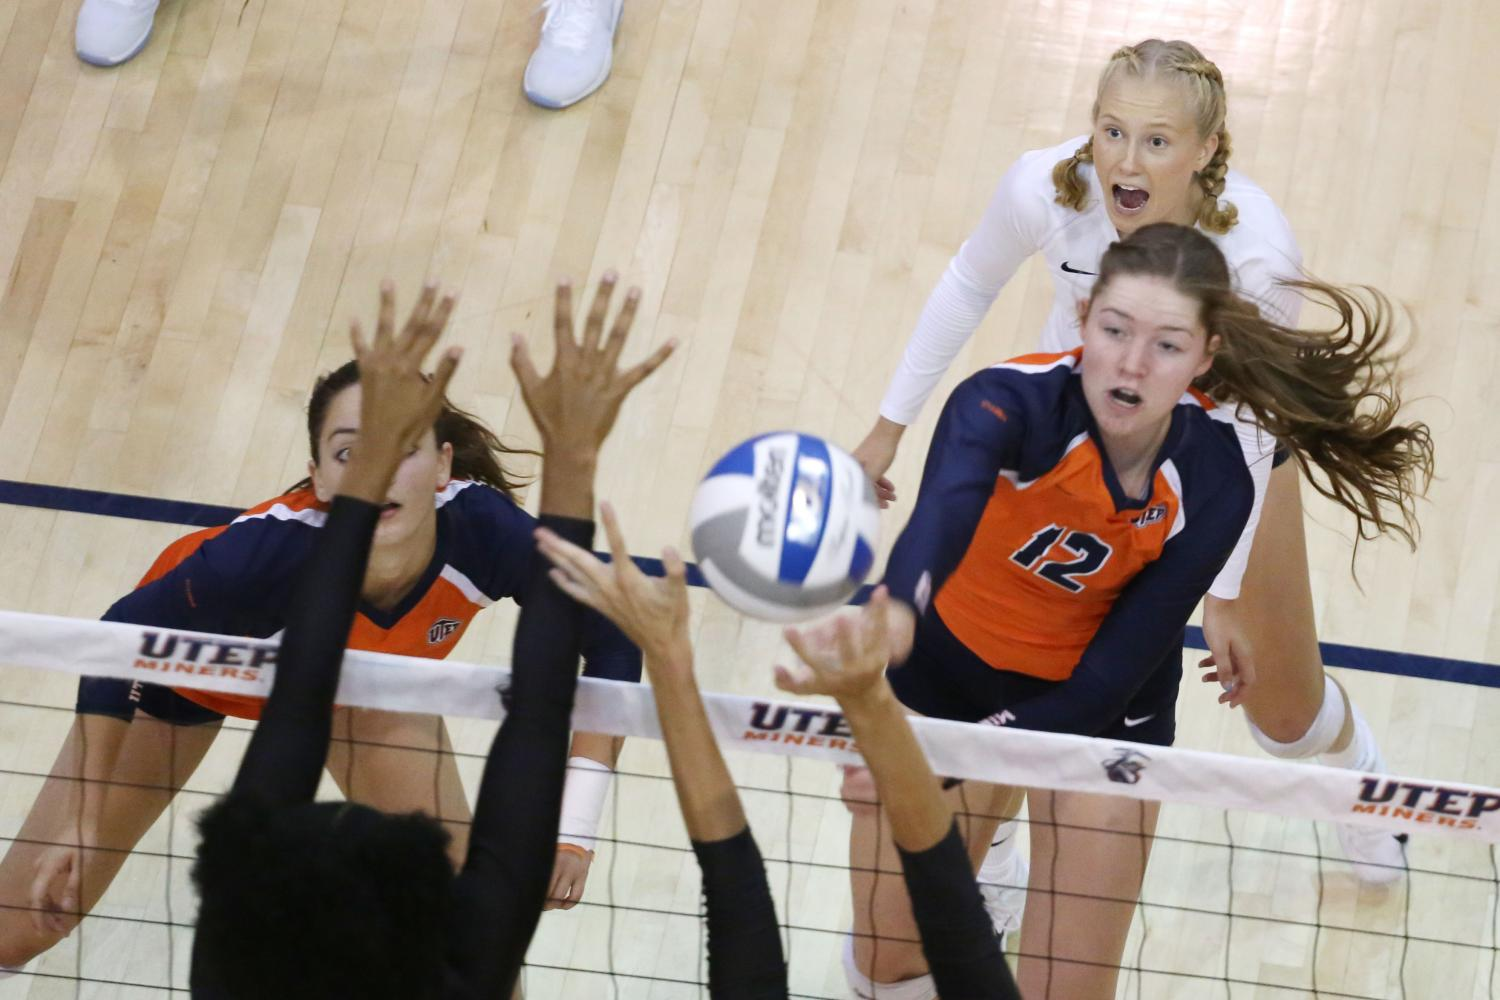 Miners+drop+to+North+Dakota+3-0+in+Glory+Road+Invitational+finale.